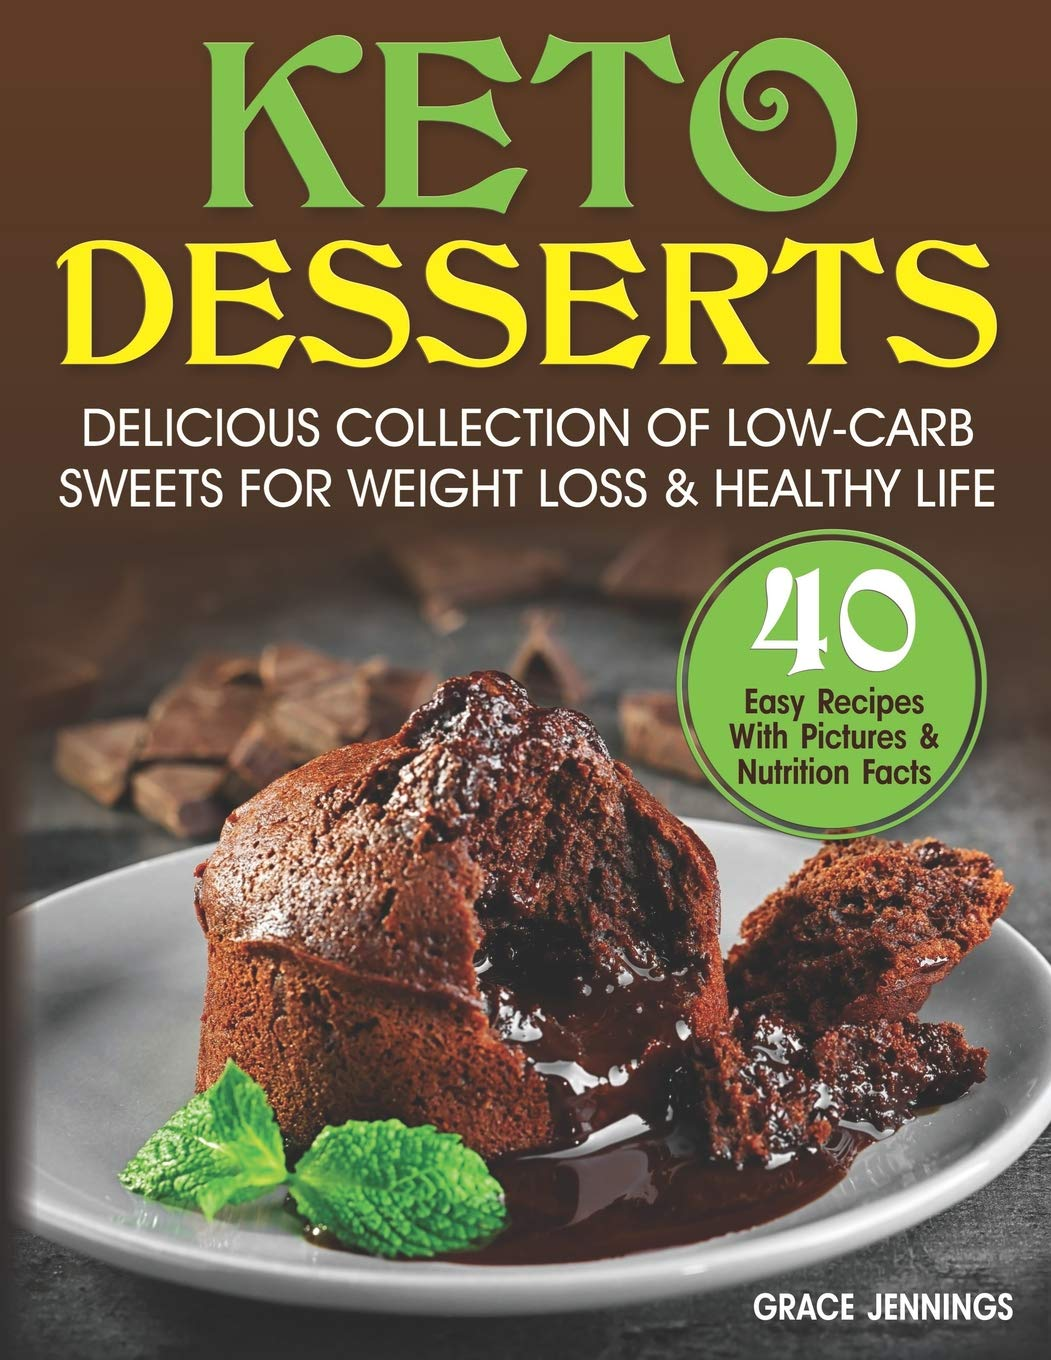 Deals Keto-Friendly Dessert Recipes Keto Sweets